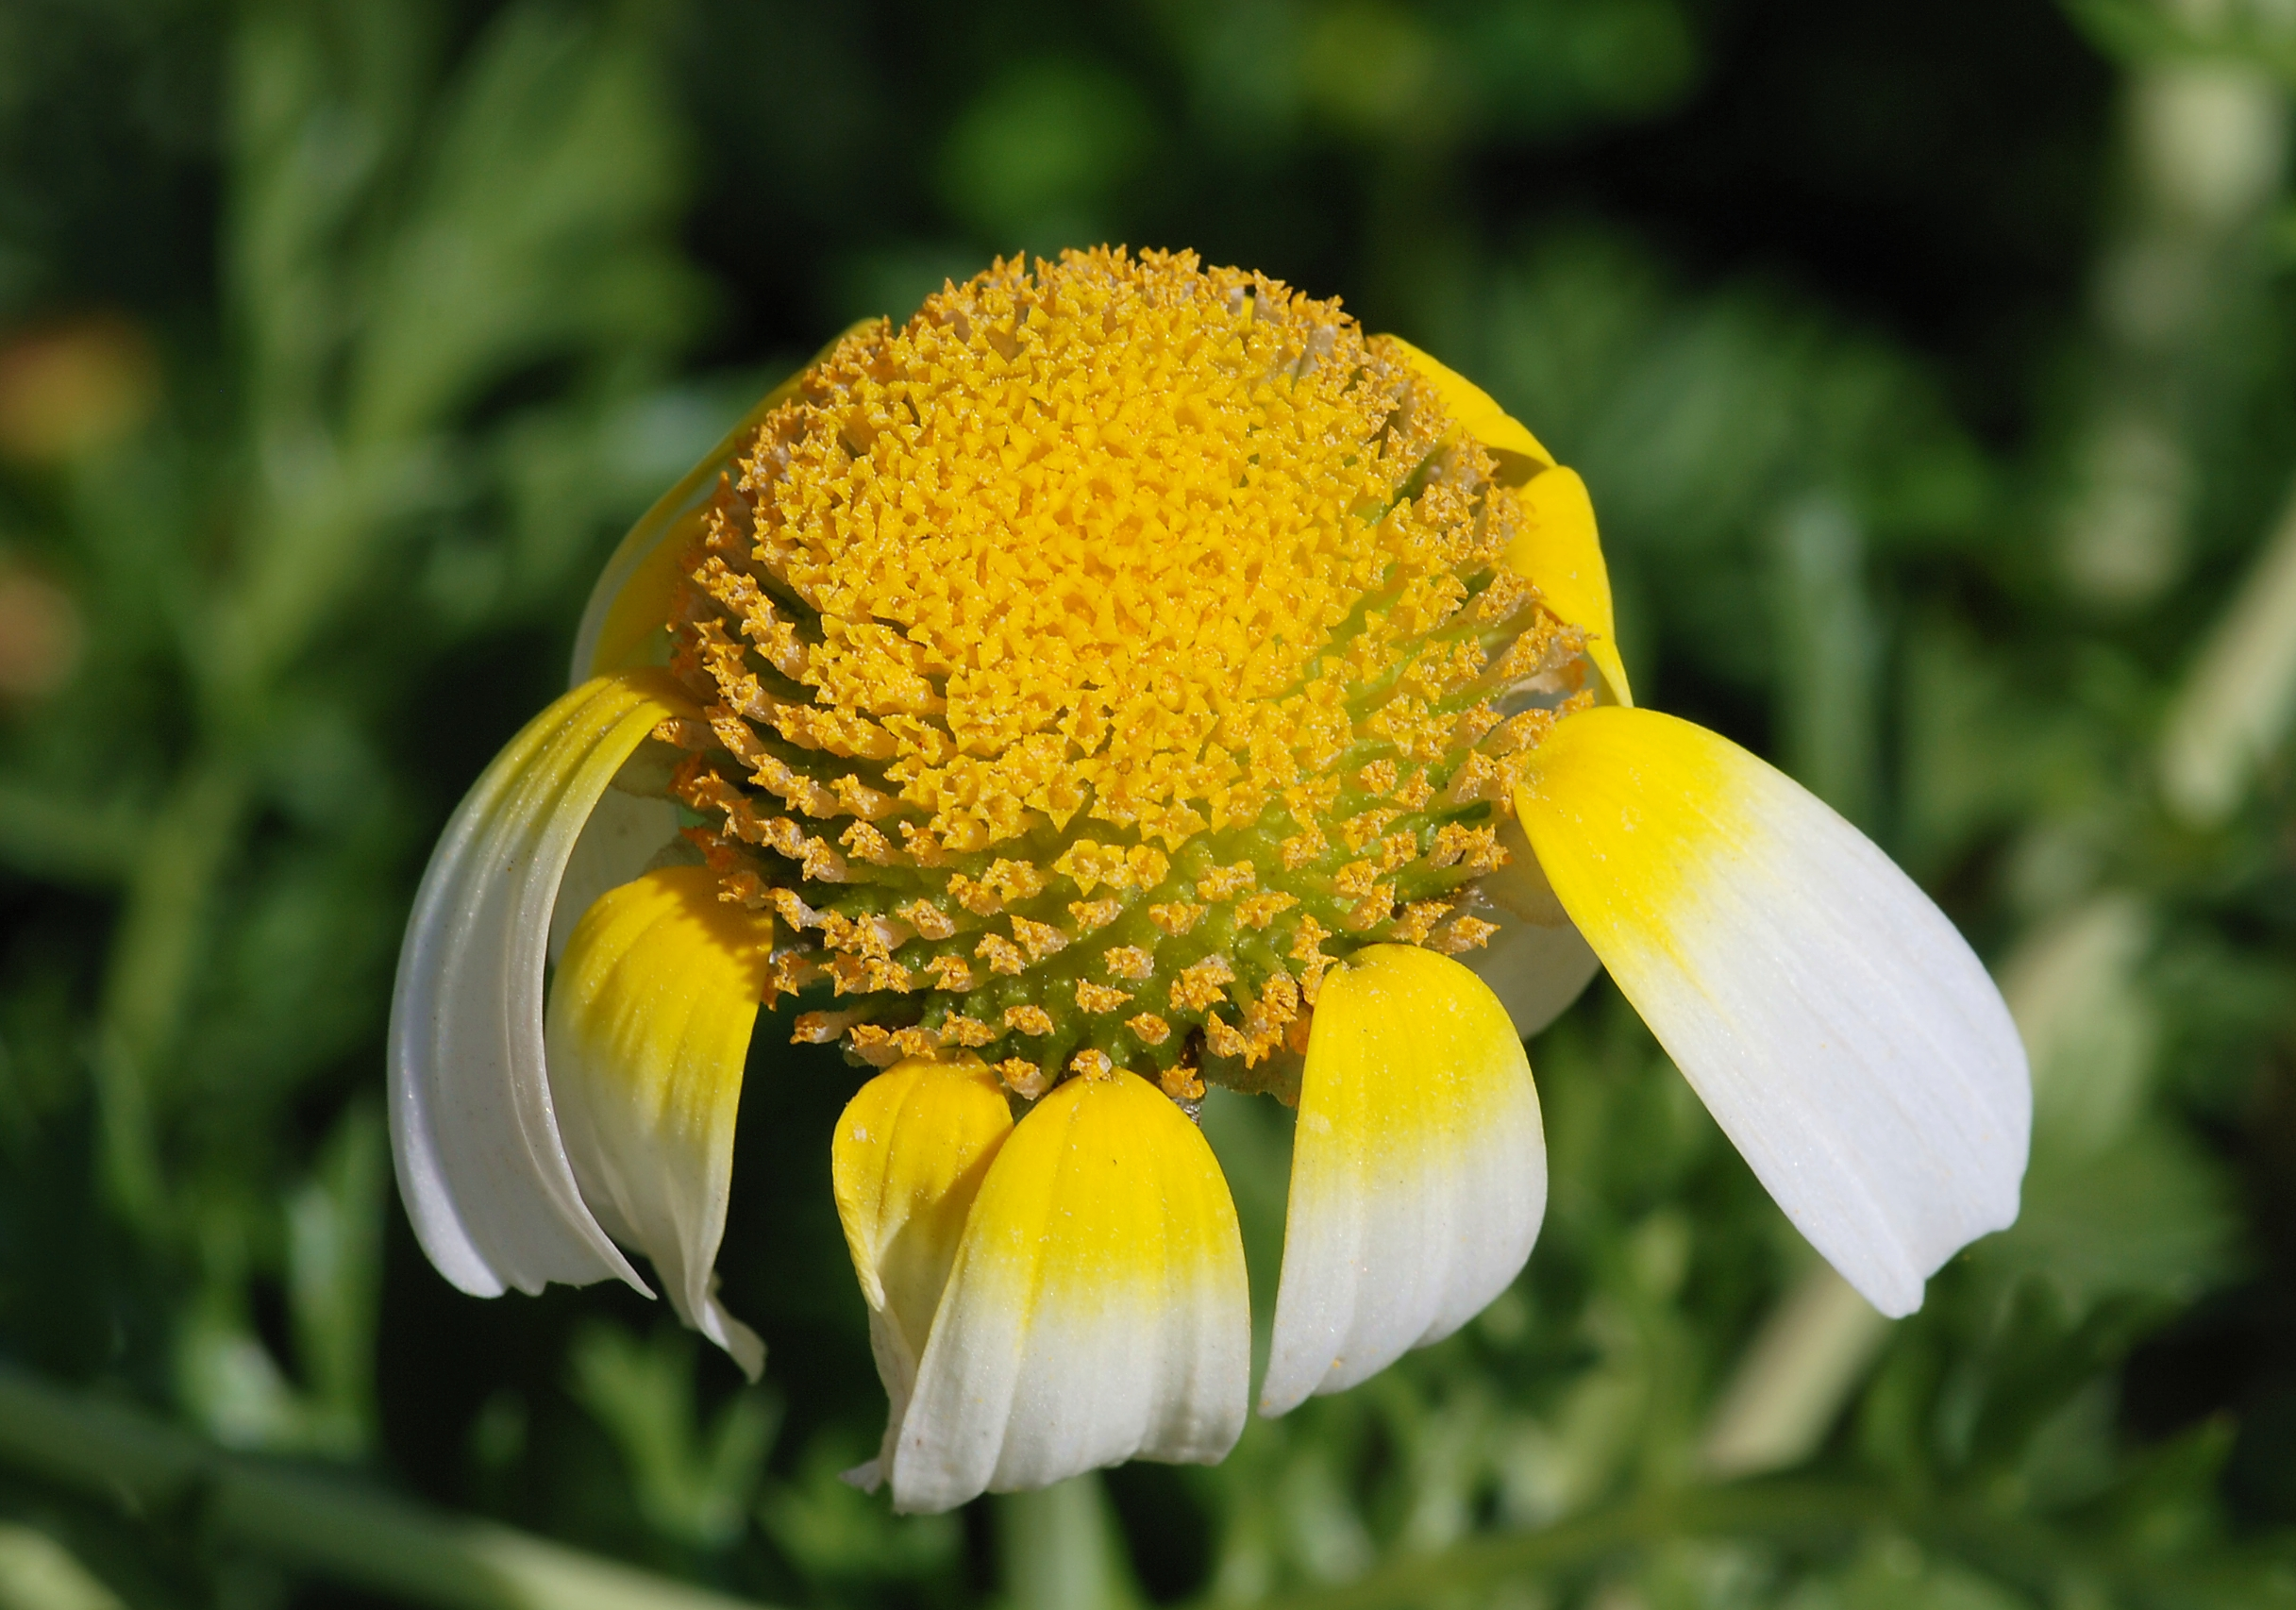 Be like the flexible, breezy daisy by keeping limber with stretching exercise.